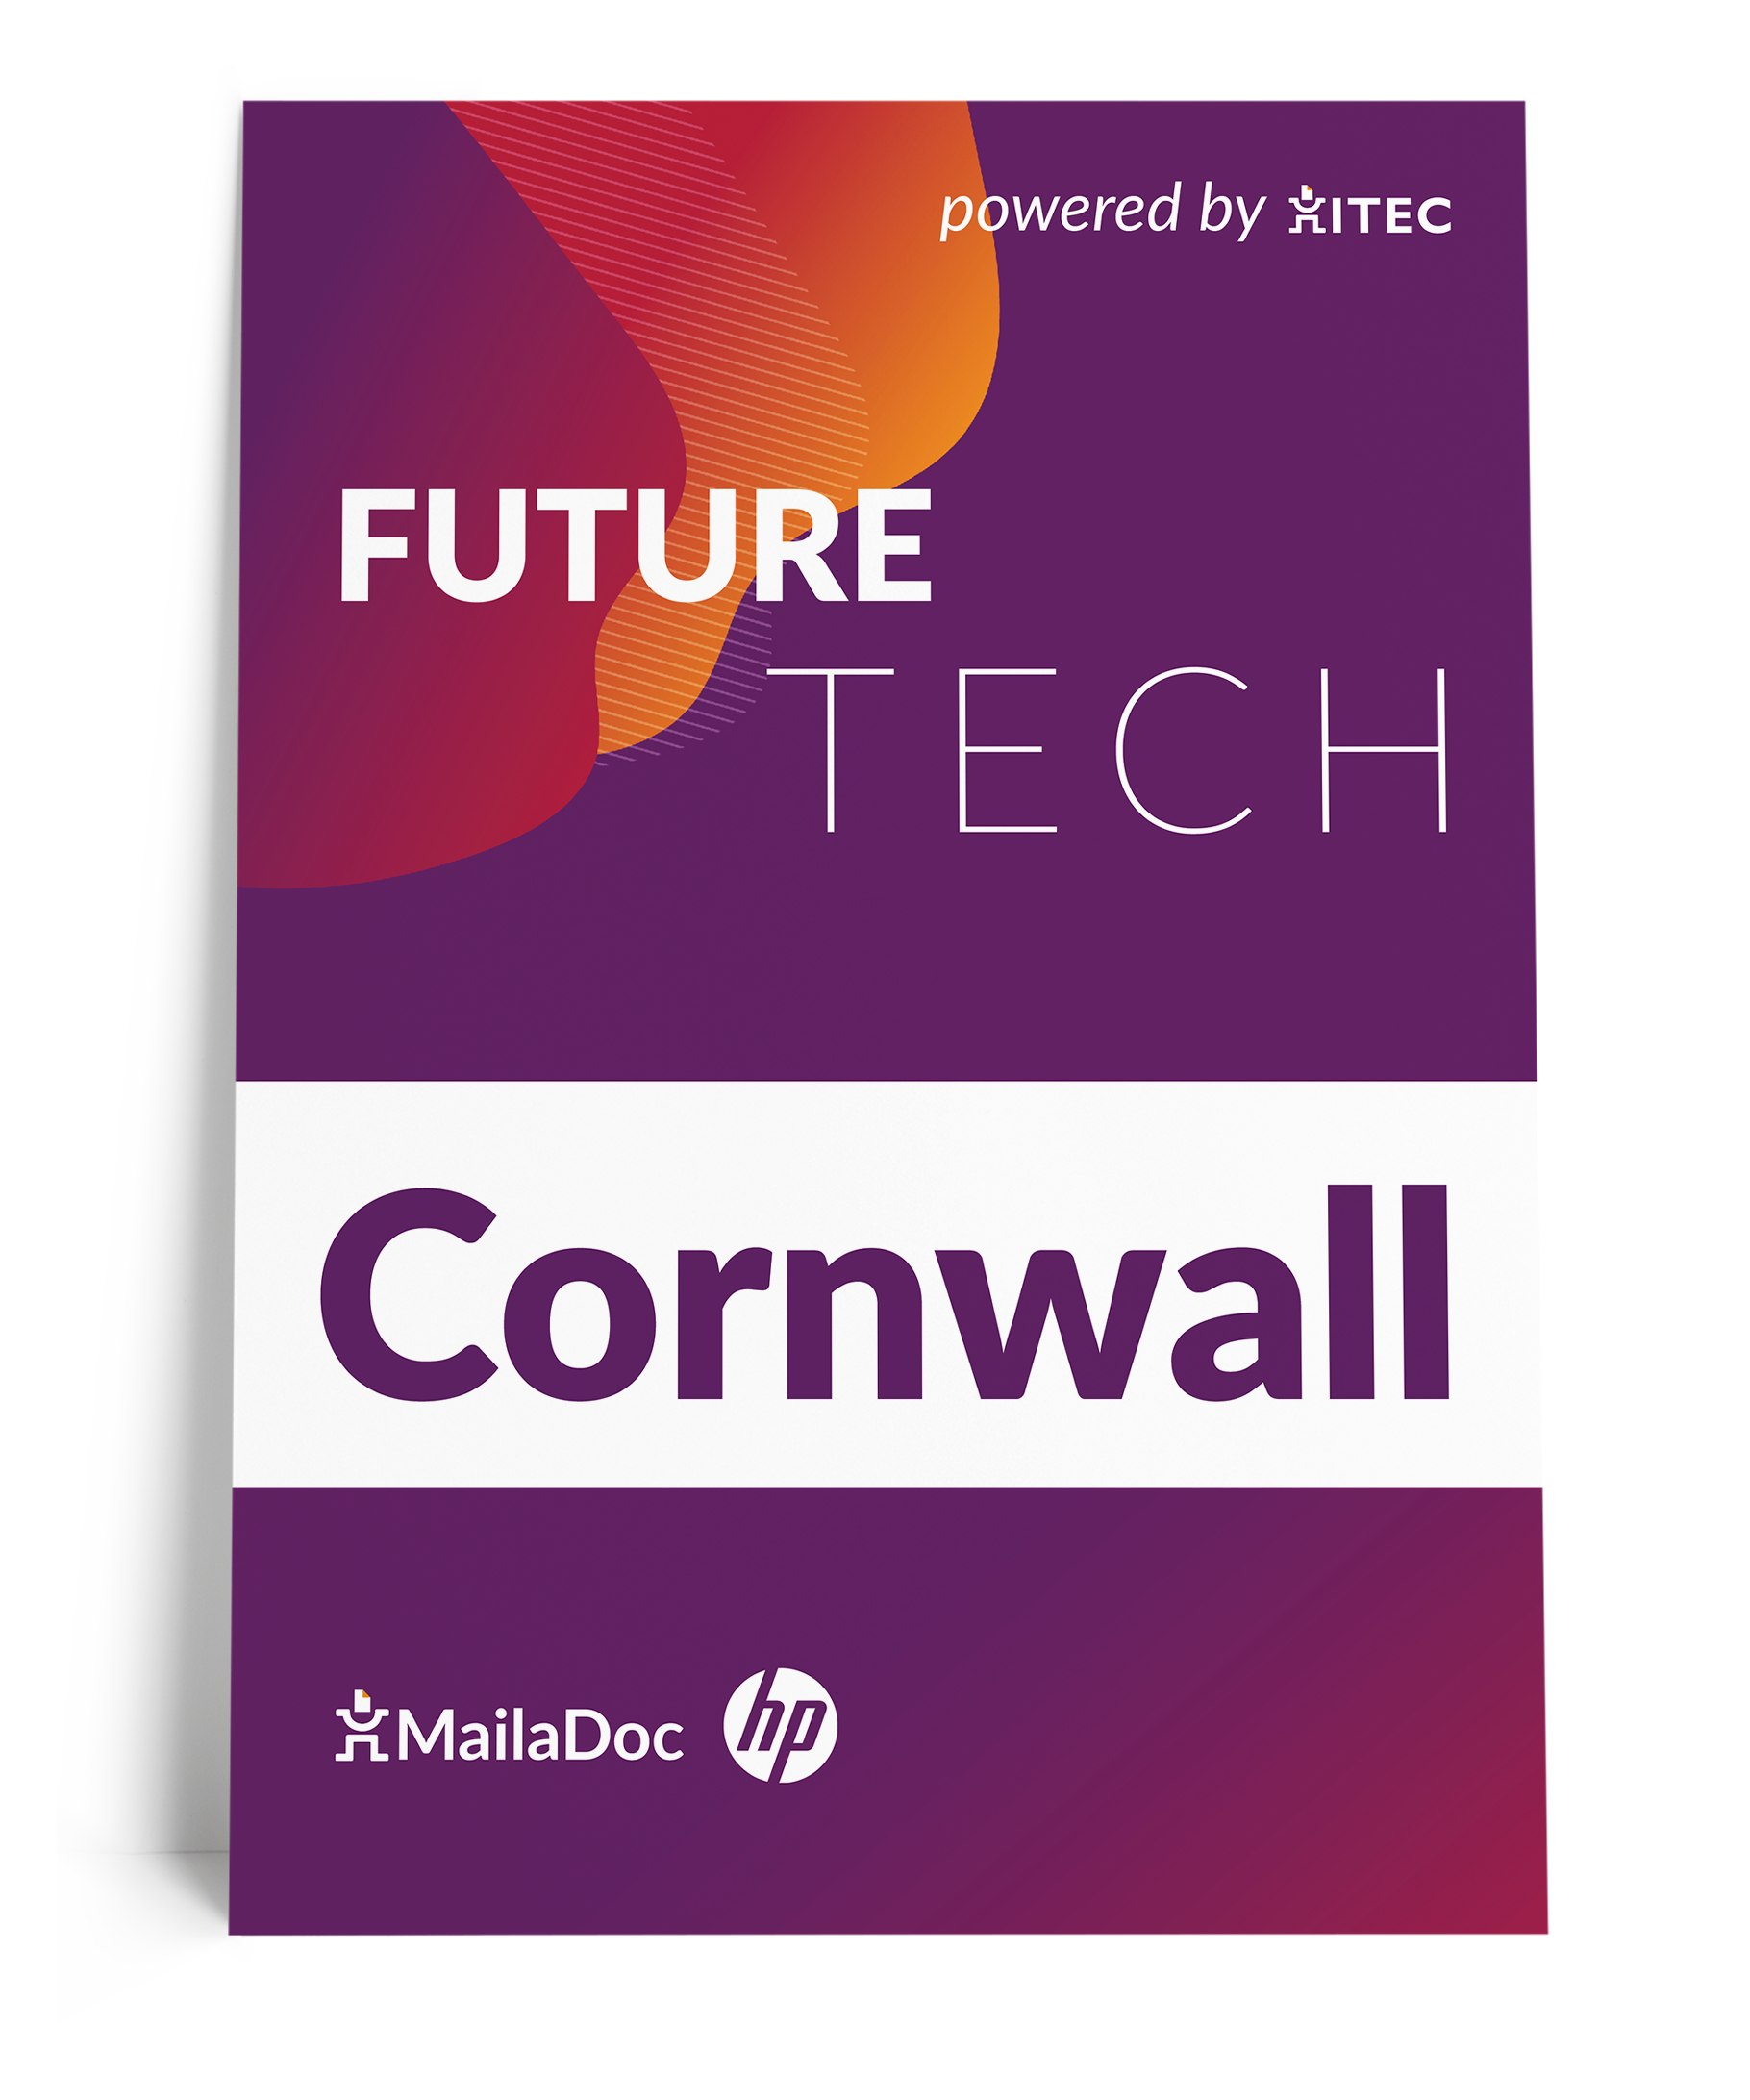 Future%20Tech%20Cornwall%20mockup